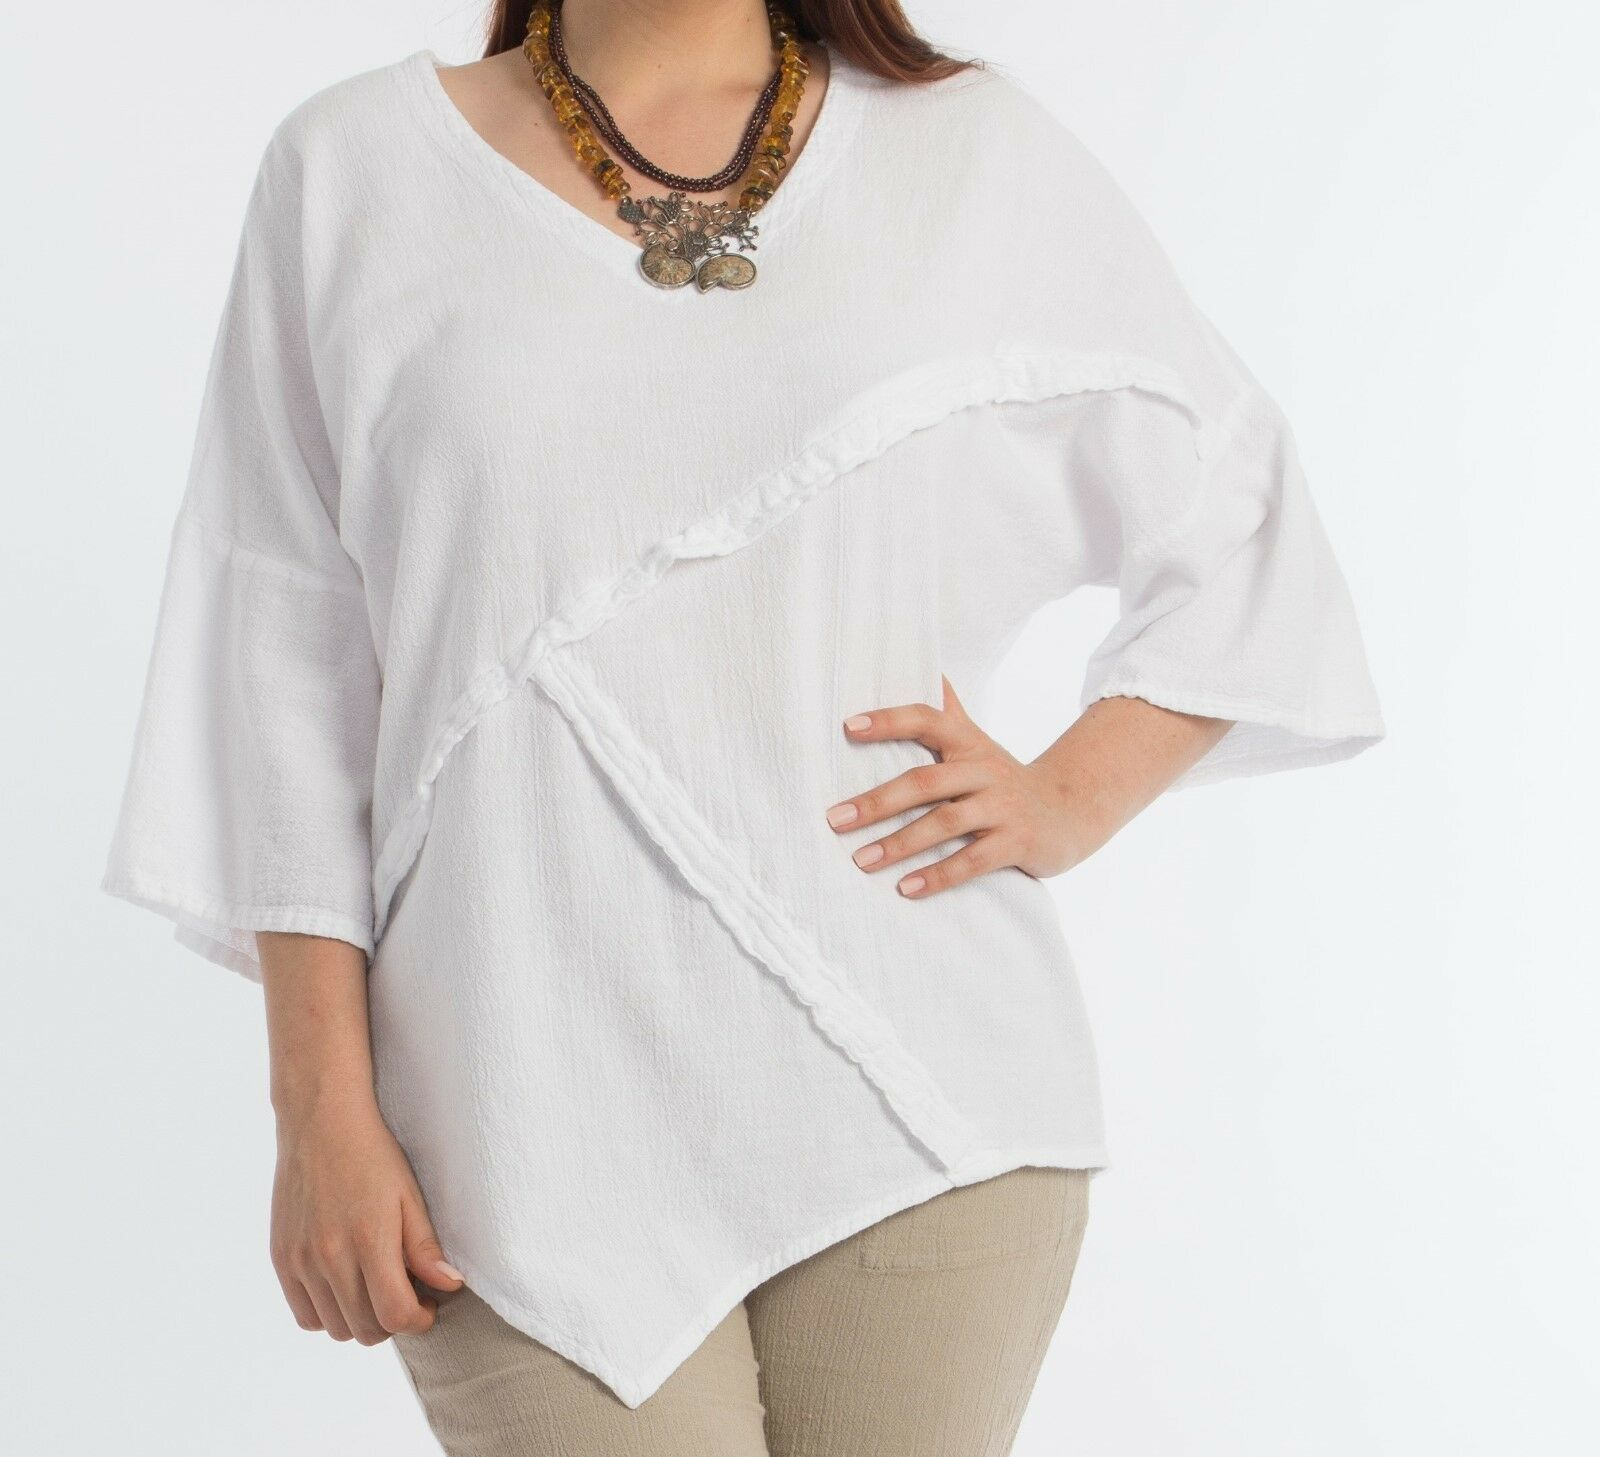 Piquito Top by Dunes Relaxed Fashions, New with Tags, 100% Cotton, Free Shipping